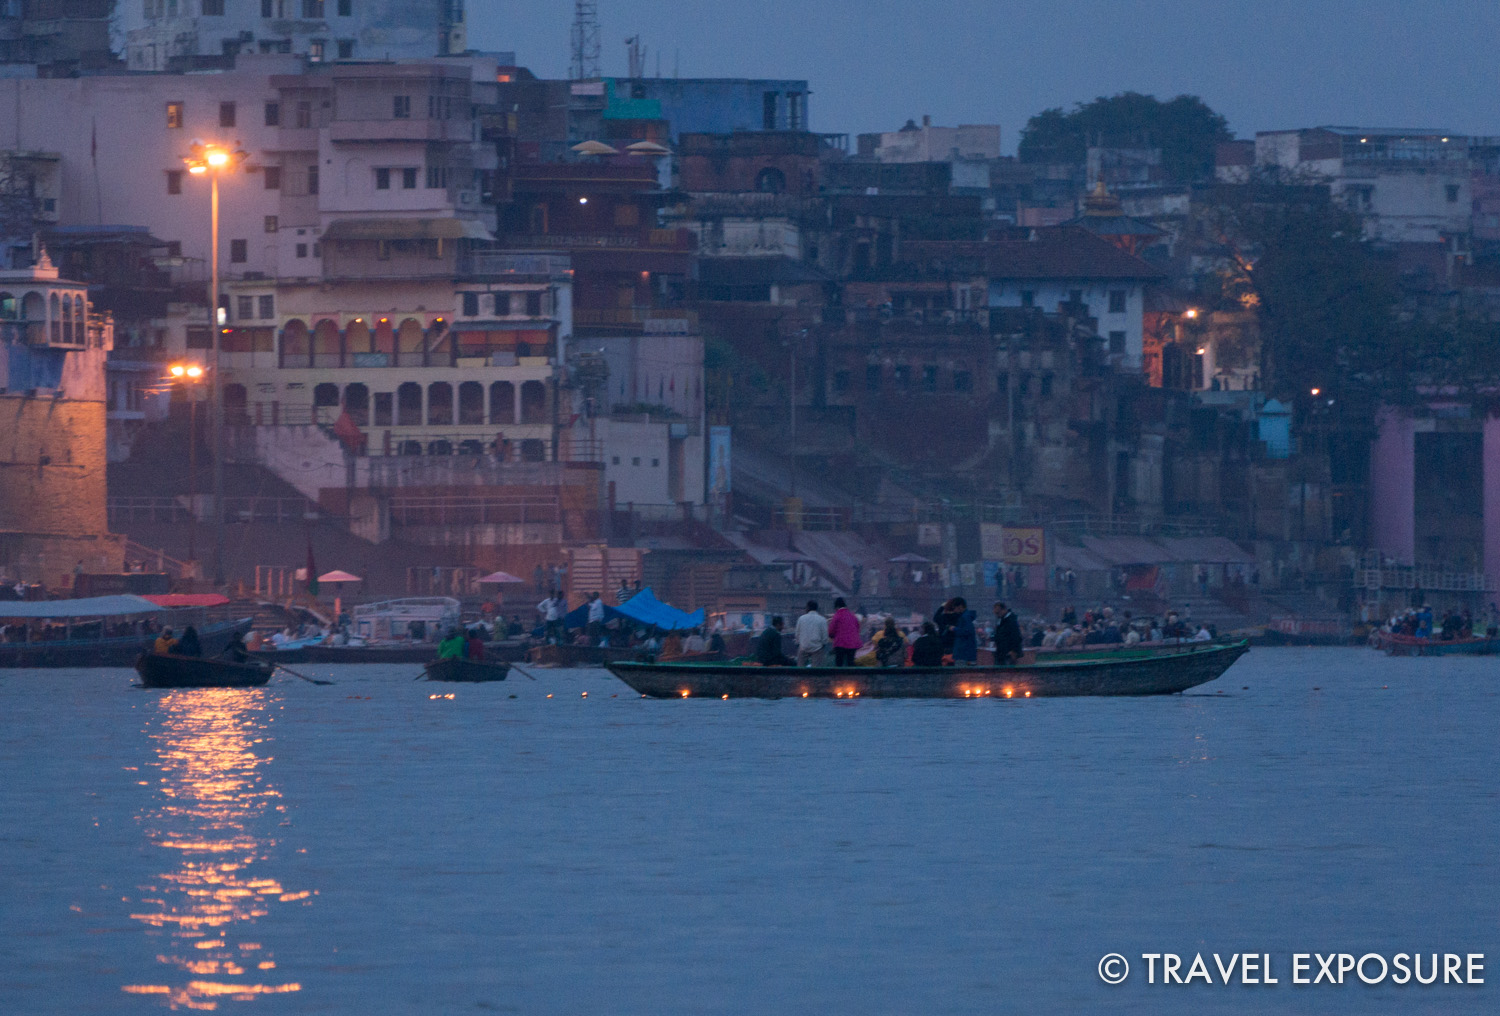 On the Ganges river in Varanasi